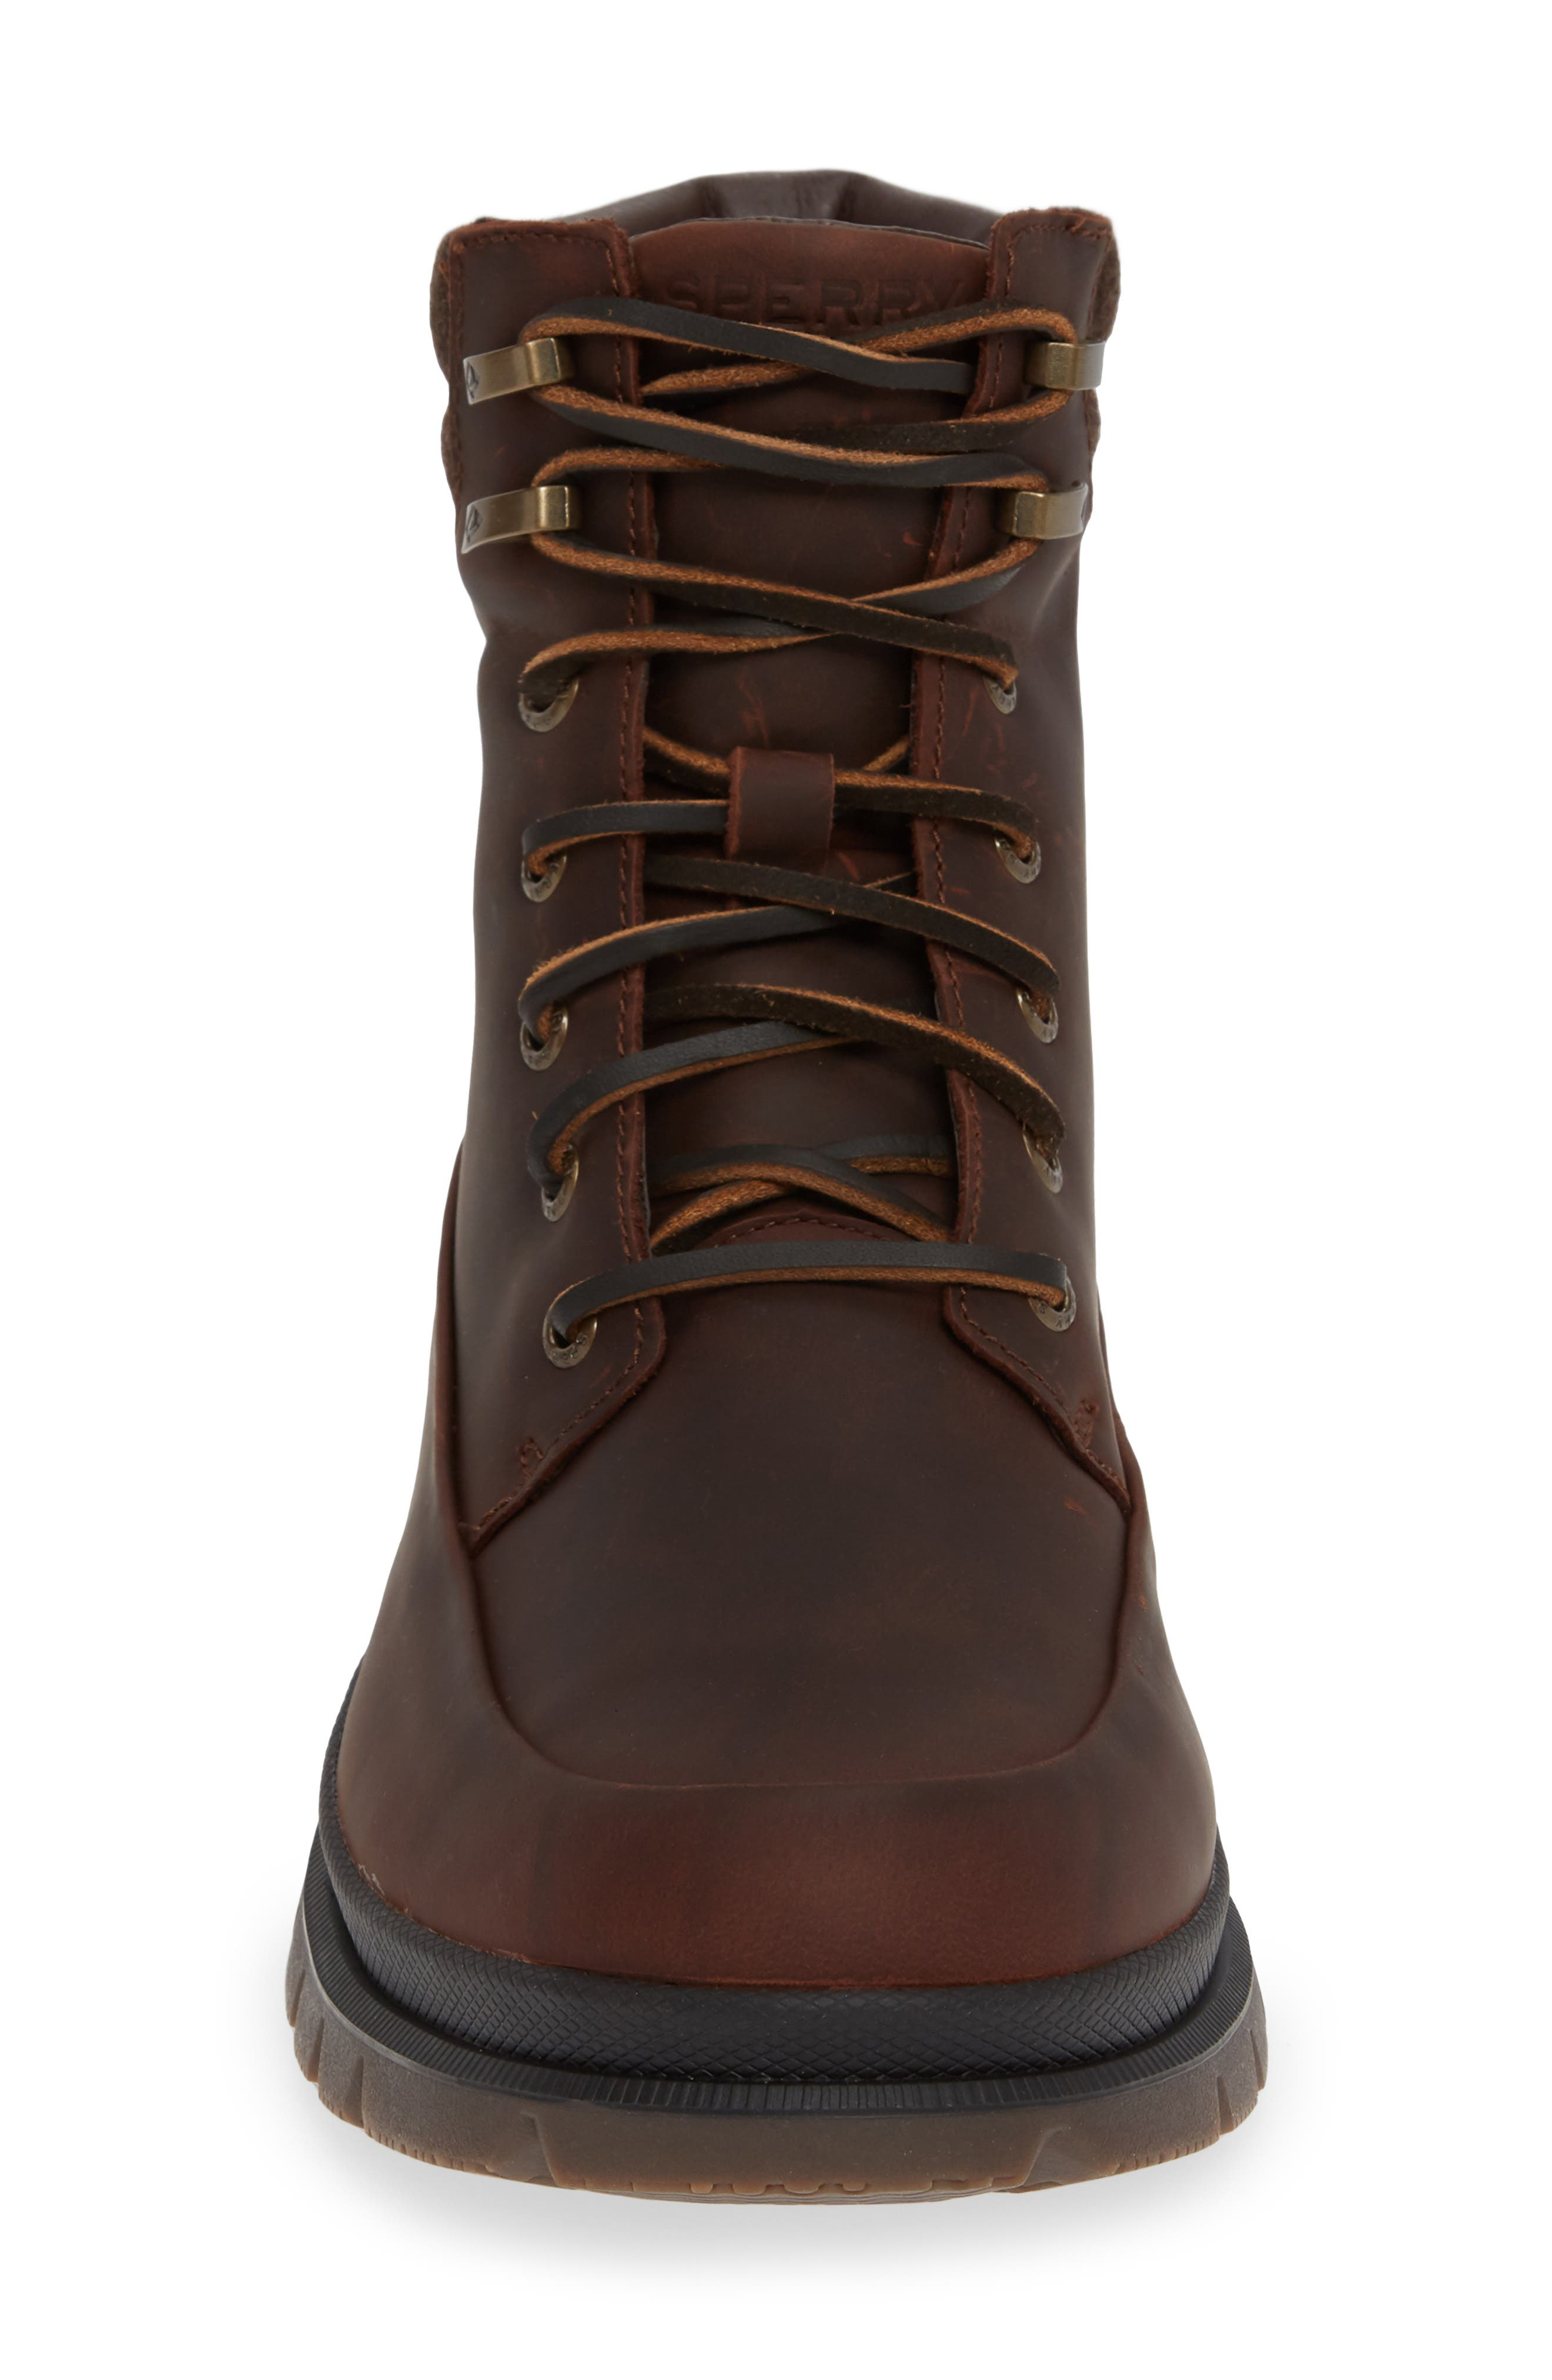 SPERRY, Watertown Waterproof Moc Toe Boot, Alternate thumbnail 4, color, BROWN